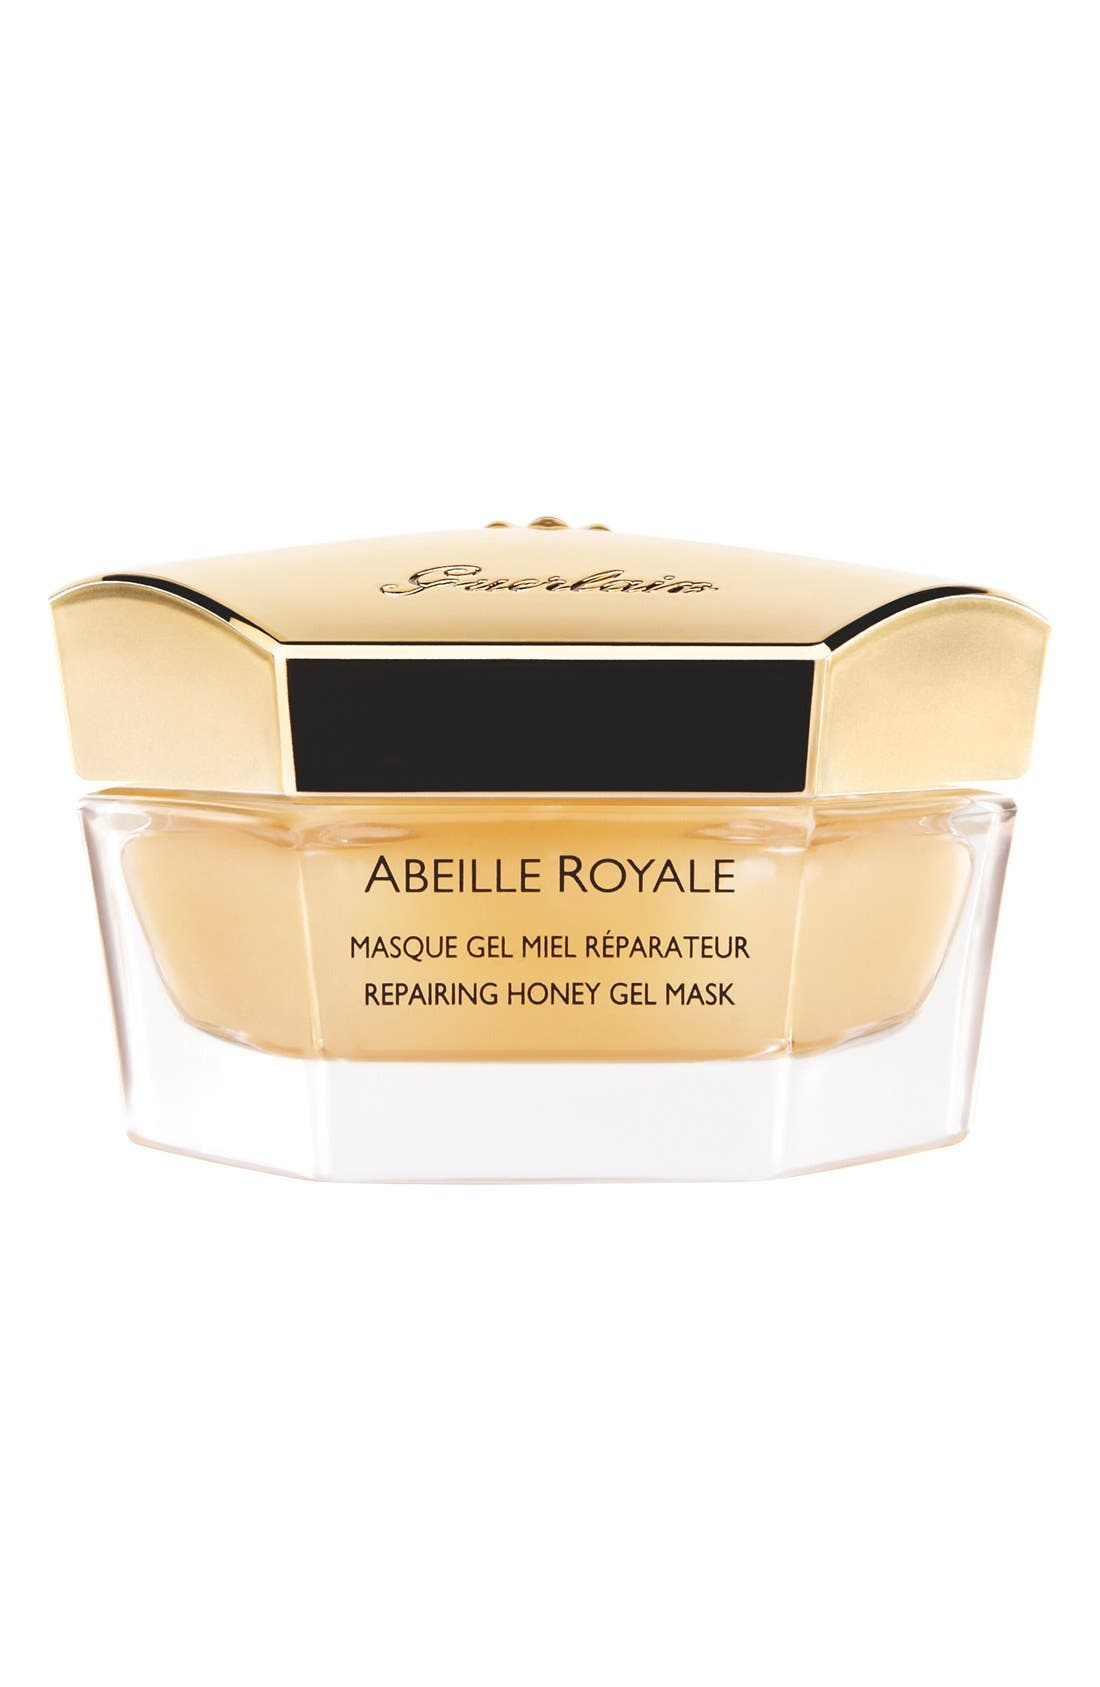 Abeille Royale - Repairing Honey Gel Mask,                             Main thumbnail 1, color,                             NO COLOR